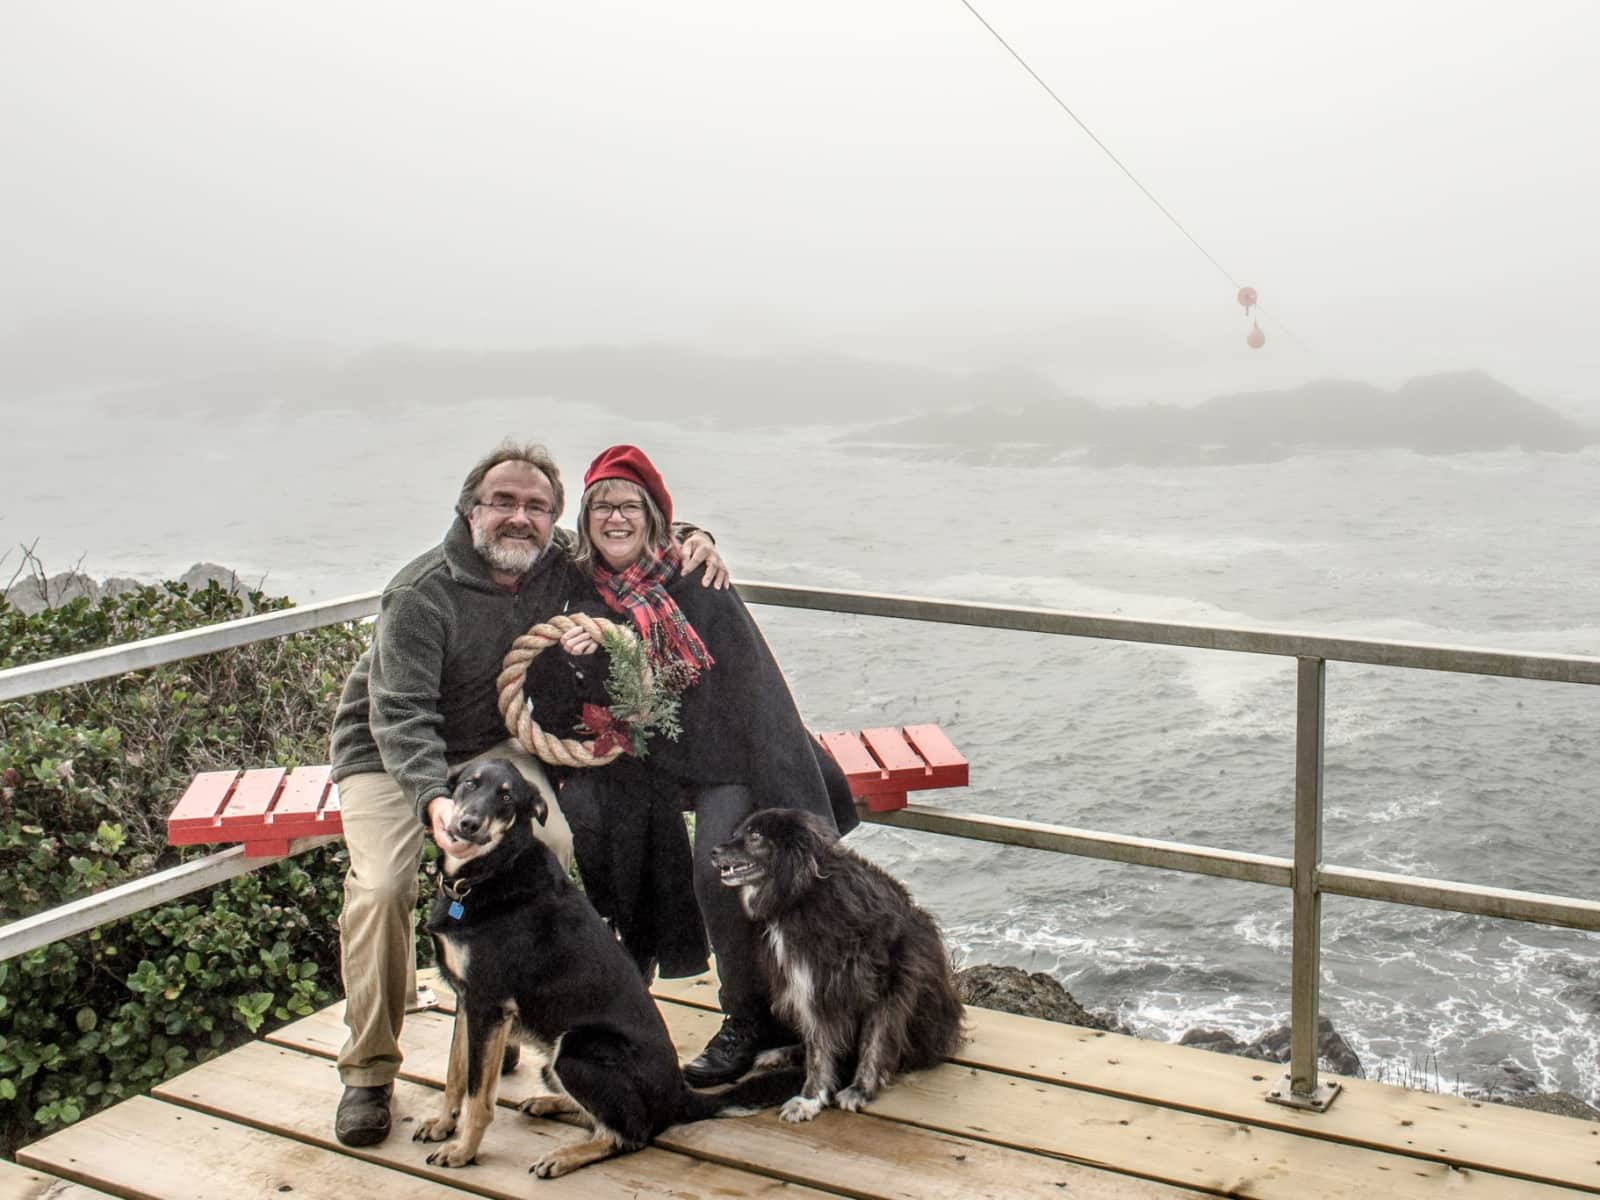 Jeff & Caroline from Tofino, British Columbia, Canada